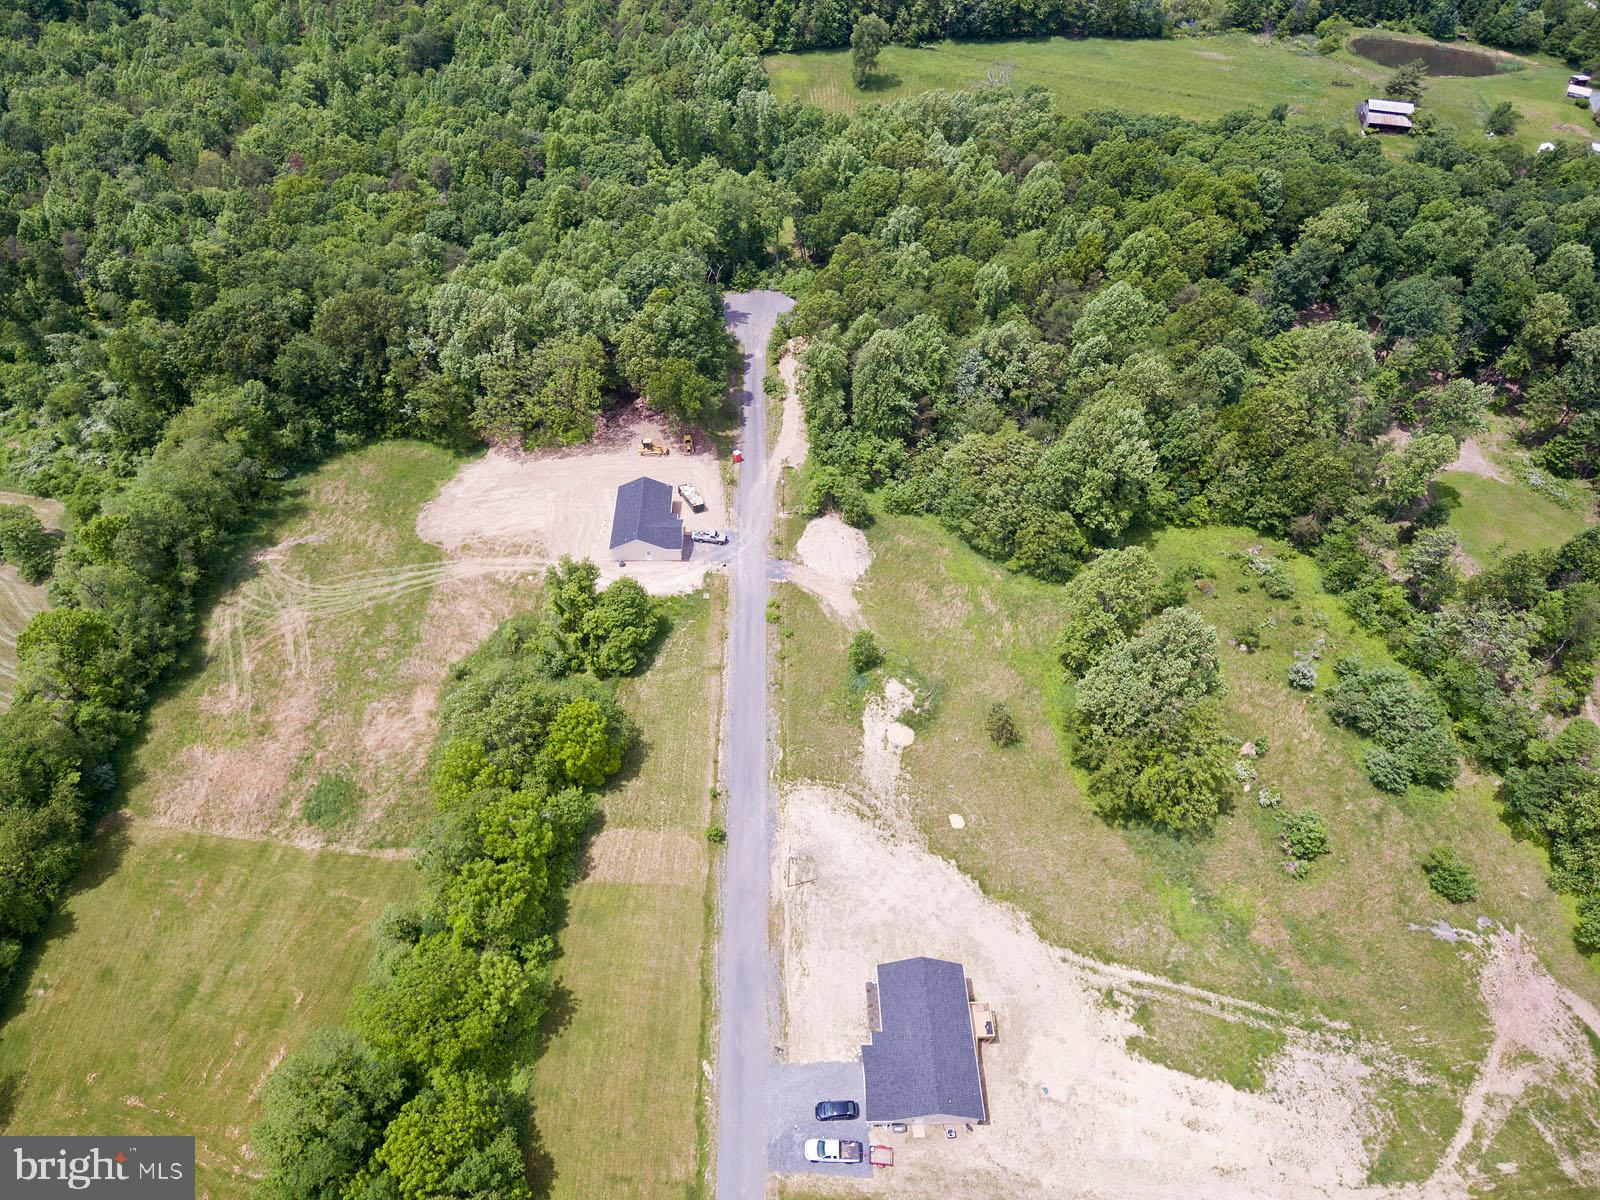 HAMPSHIRE HOUSE DRIVE, HIGH VIEW, WV 26808